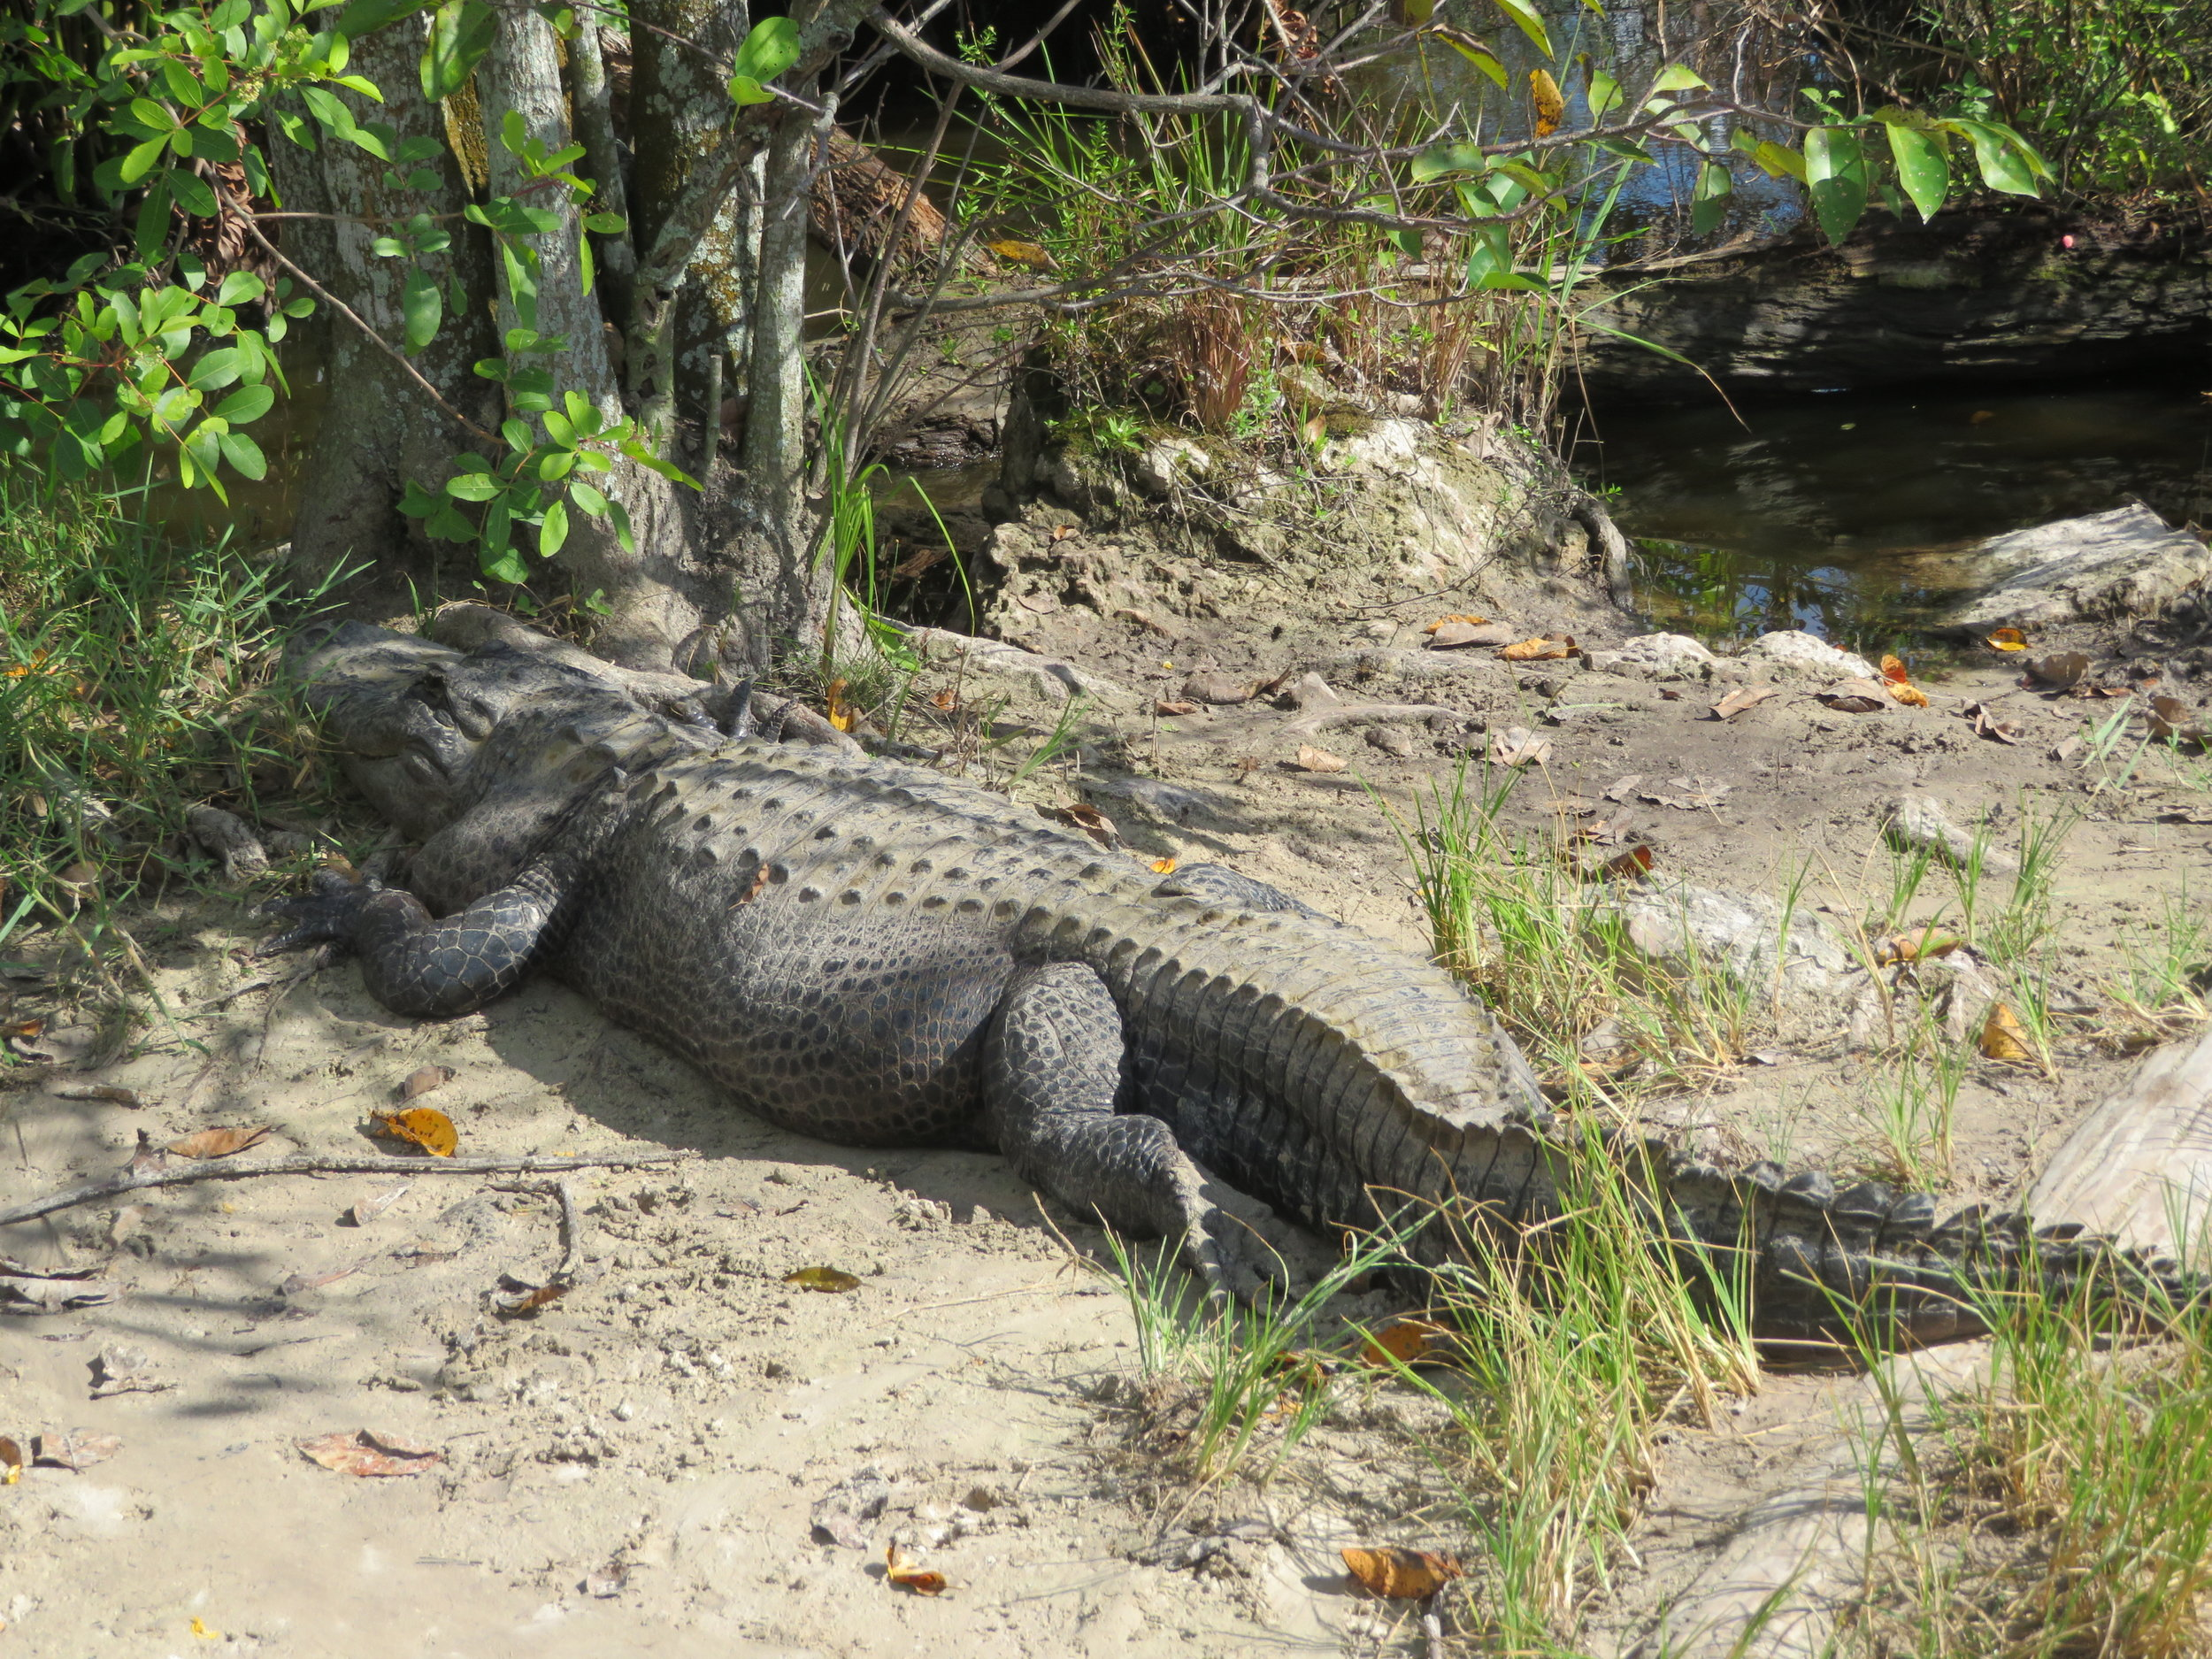 Don't worry…you WILL see gators in the Everglades!